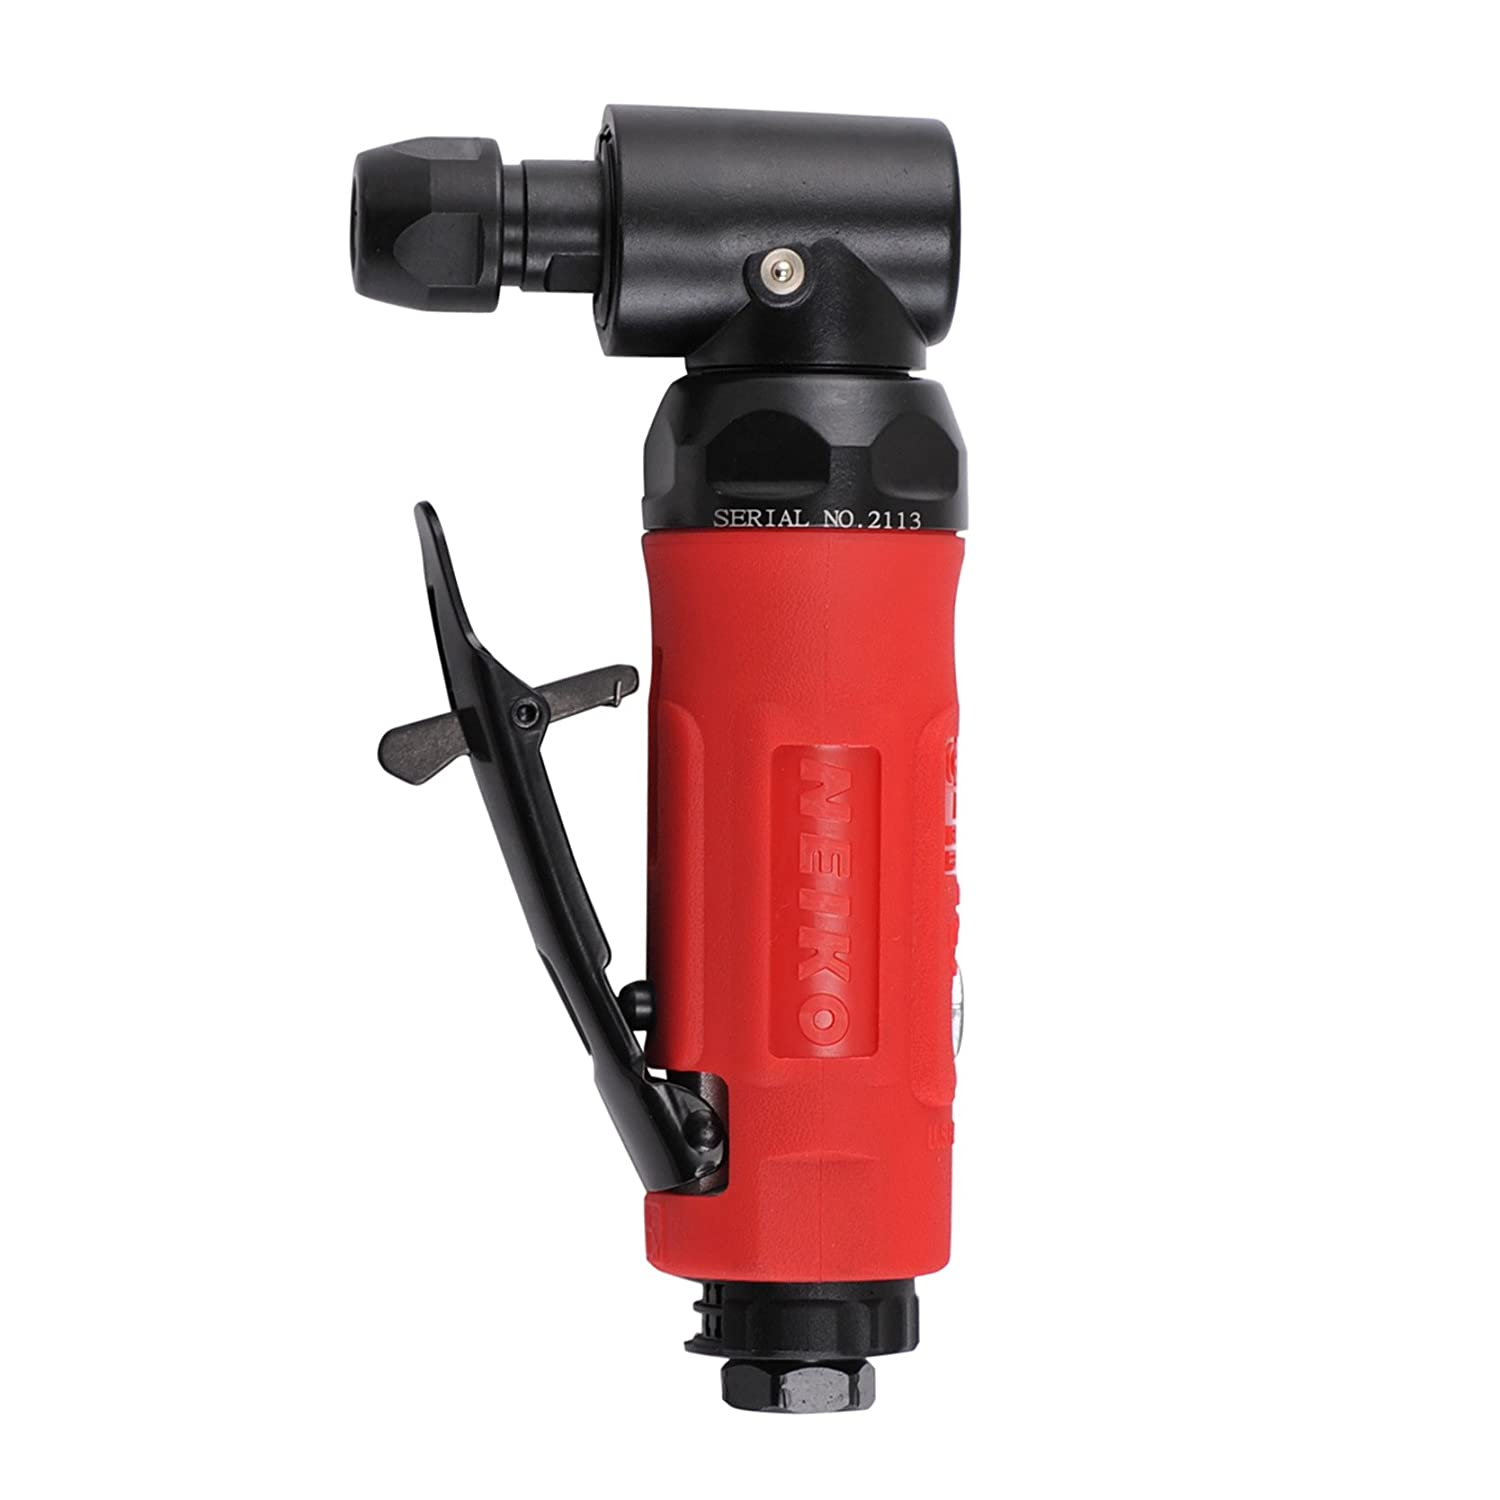 Neiko 30109B Mini Angle Die Grinder Rear Exhaust, 90 Degree 1 4 Collet Self Locking Safety Lever 90 PSI, 20000 RPM